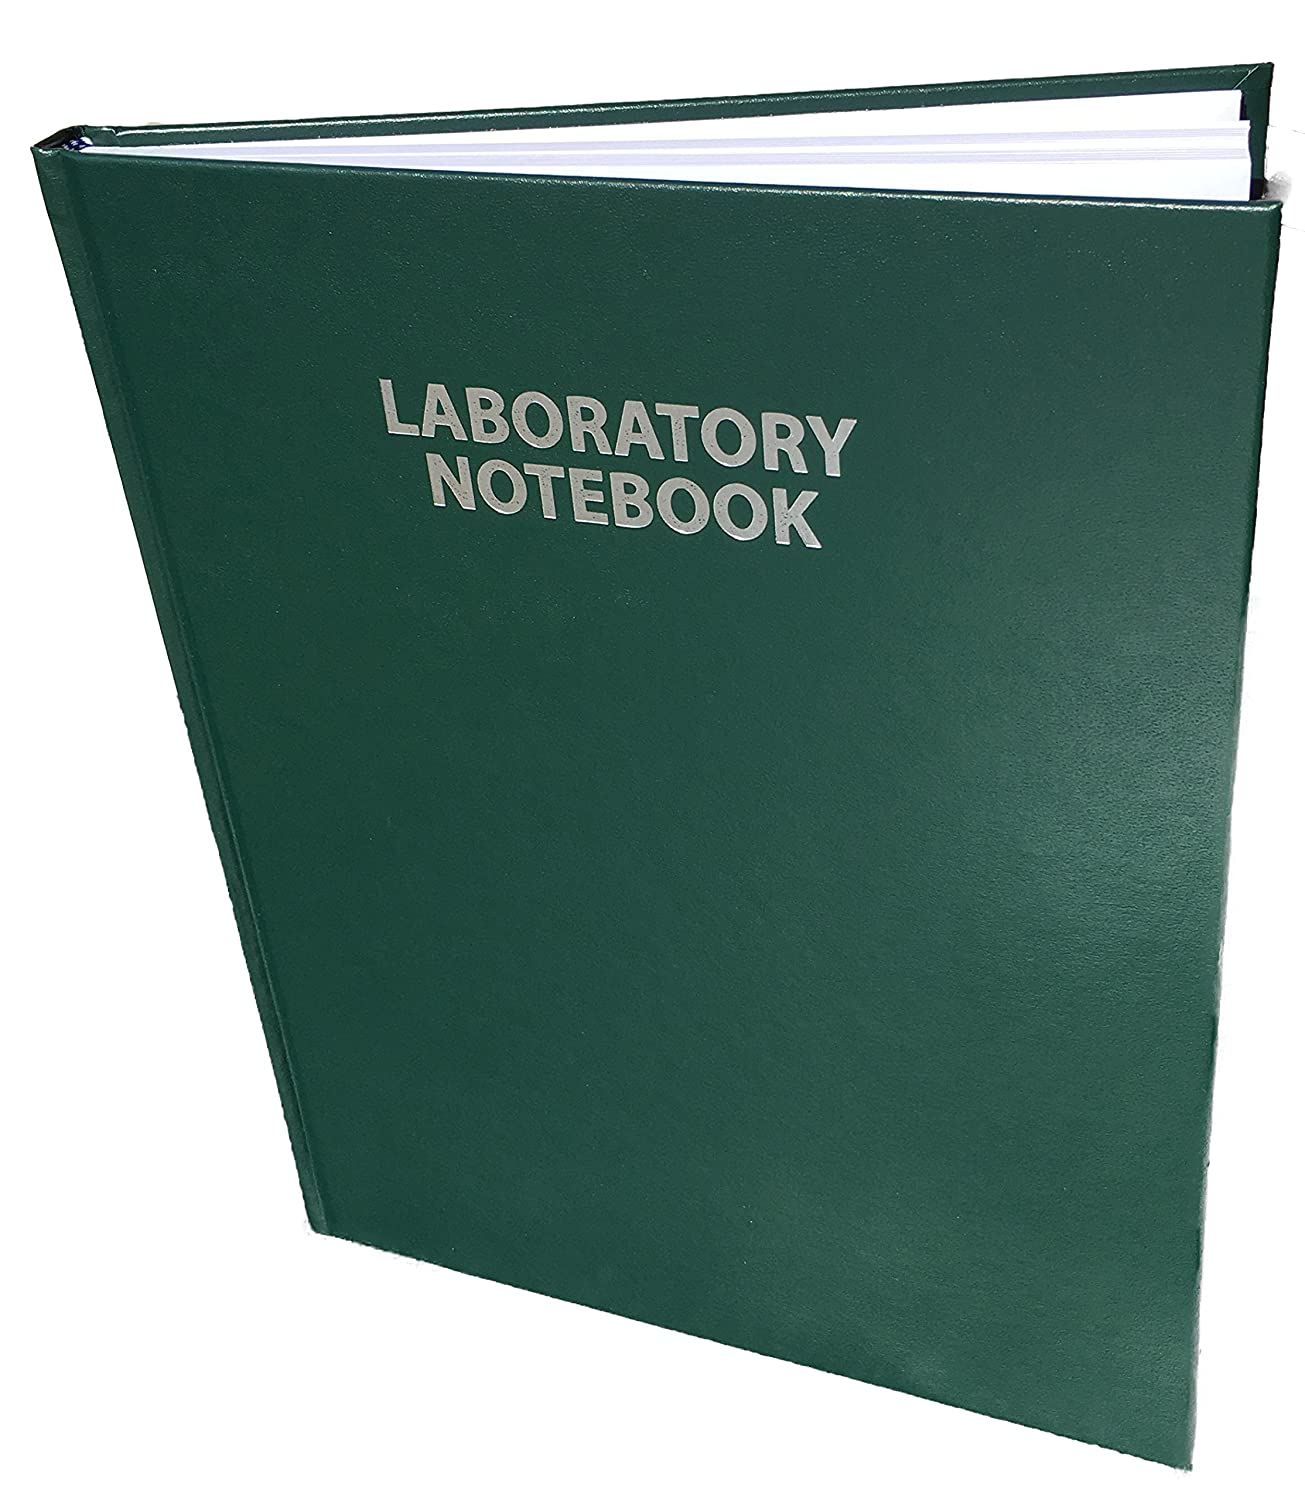 Scientific Notebook Company Laboratory Notebook Green Hardcover 2001HC Recycled paper